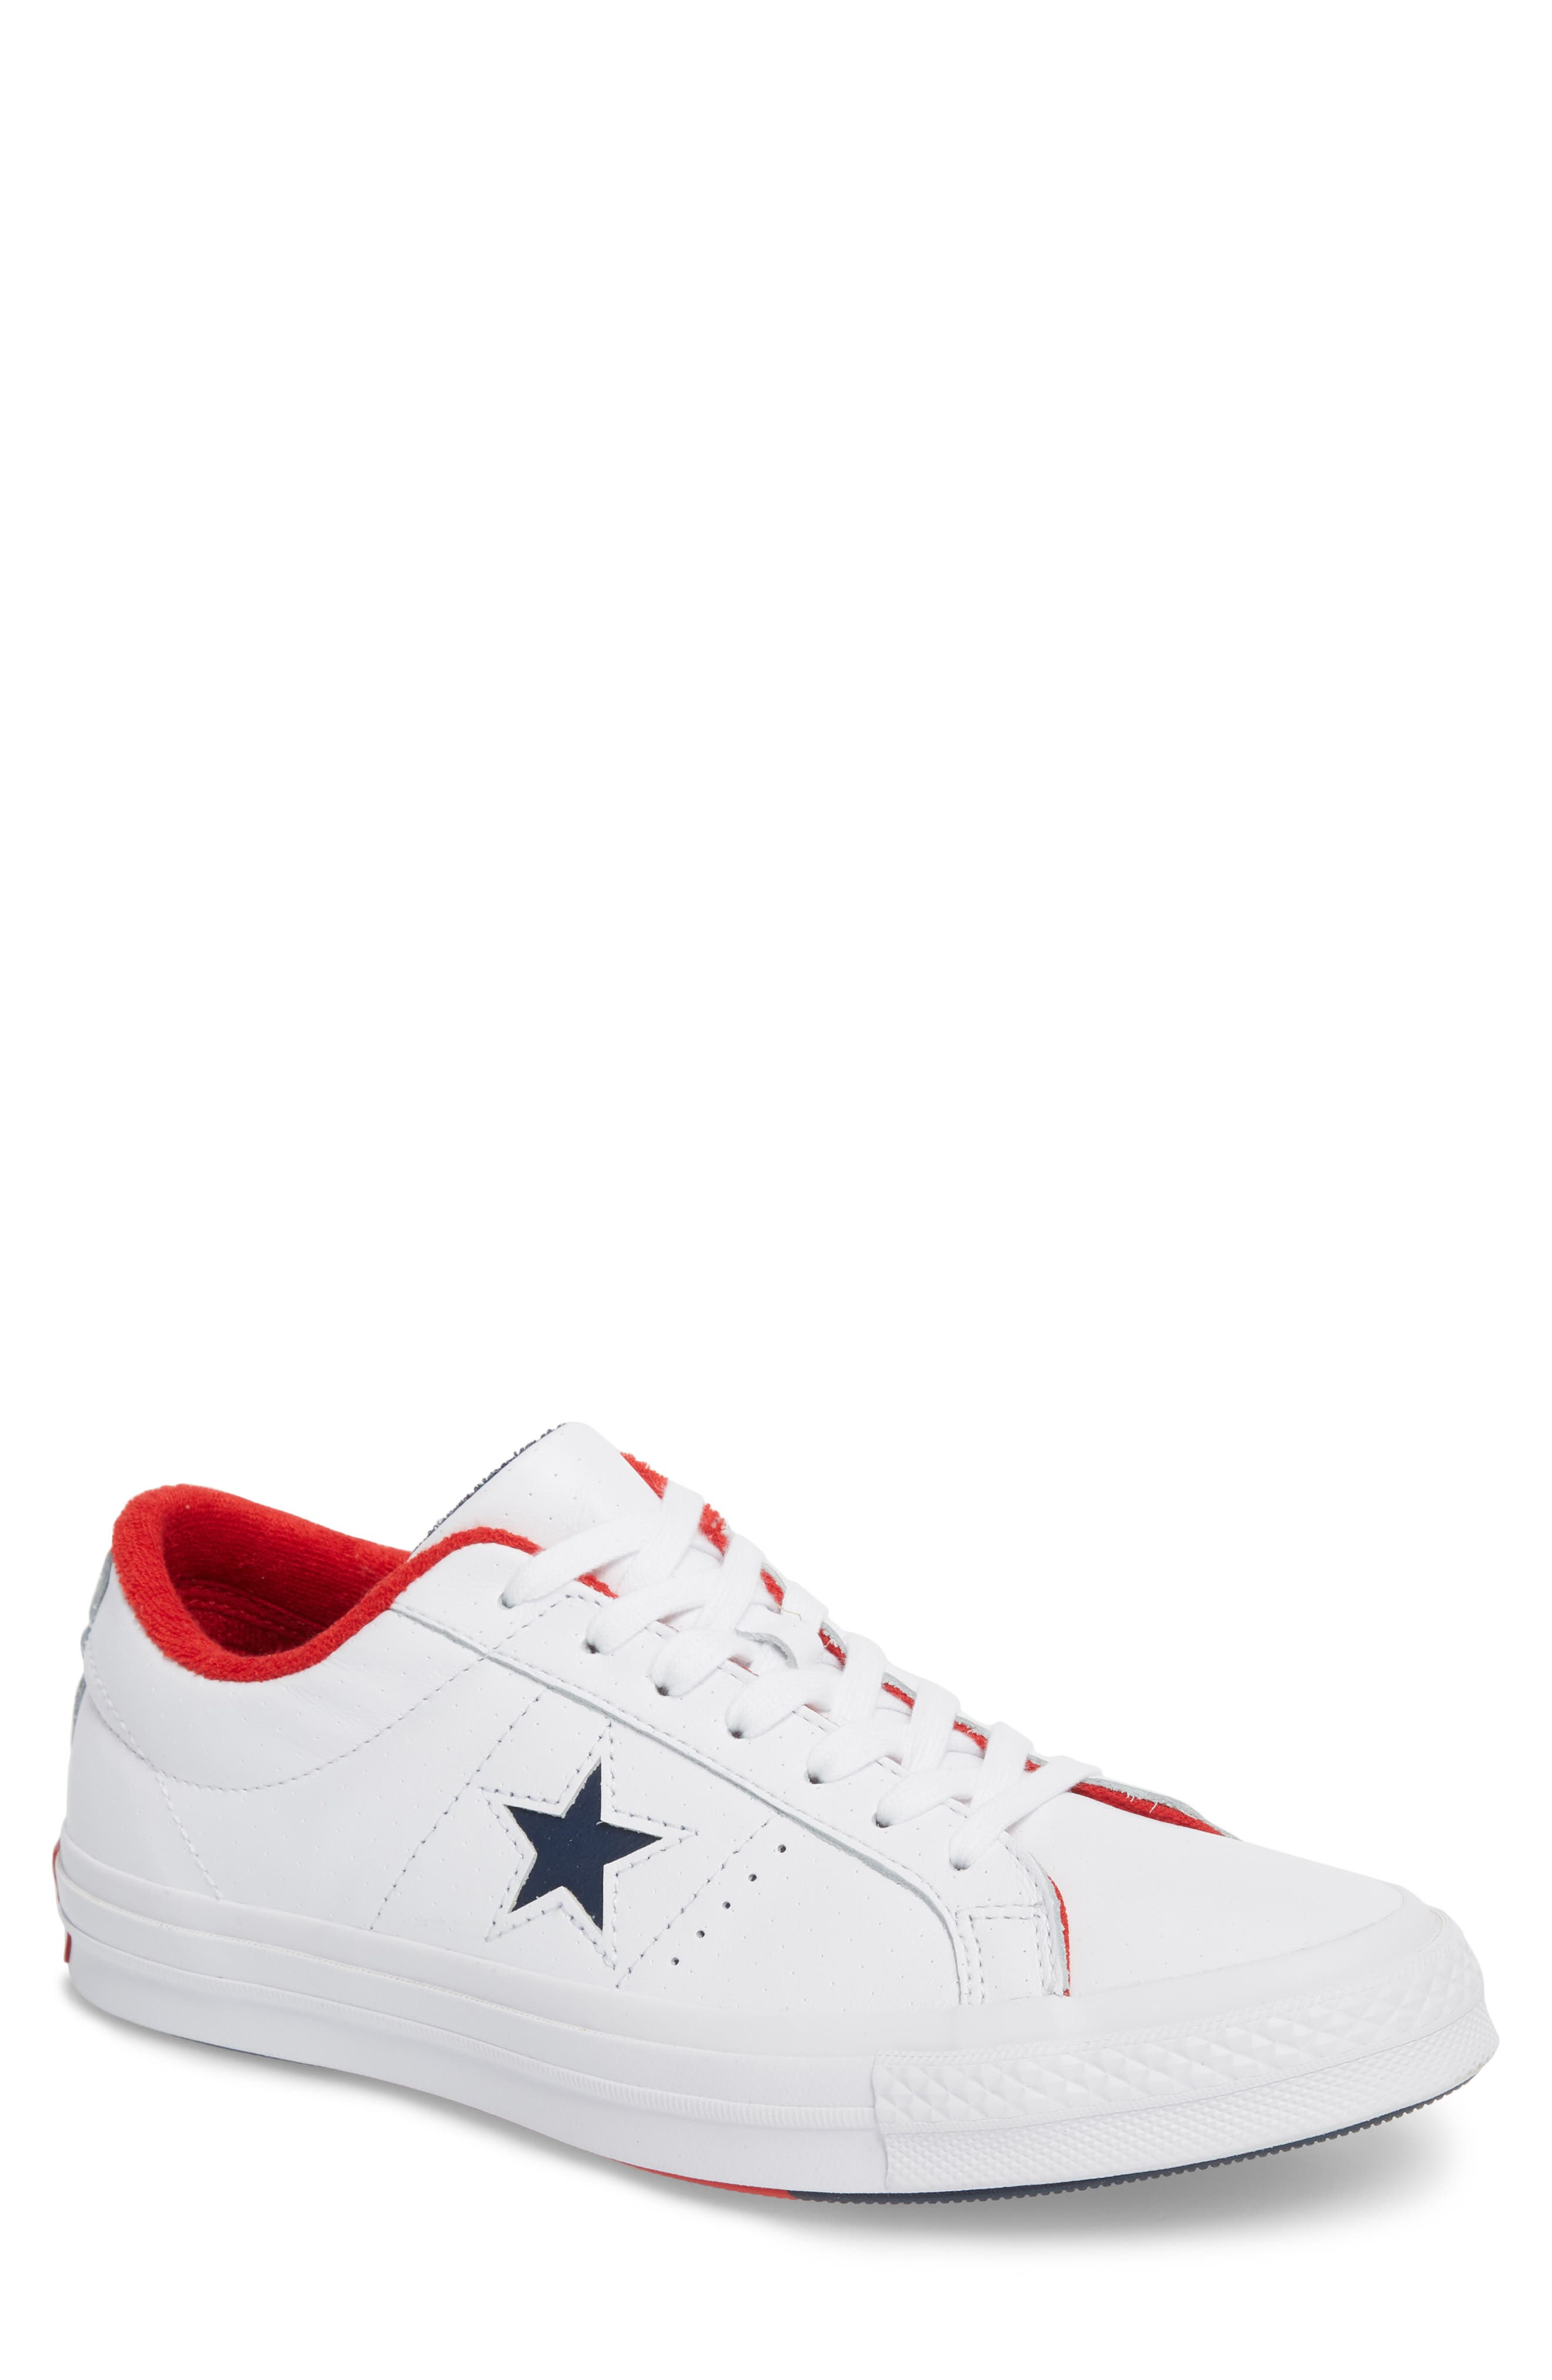 Chuck Taylor<sup>®</sup> One Star Grand Slam Sneaker,                             Main thumbnail 1, color,                             101